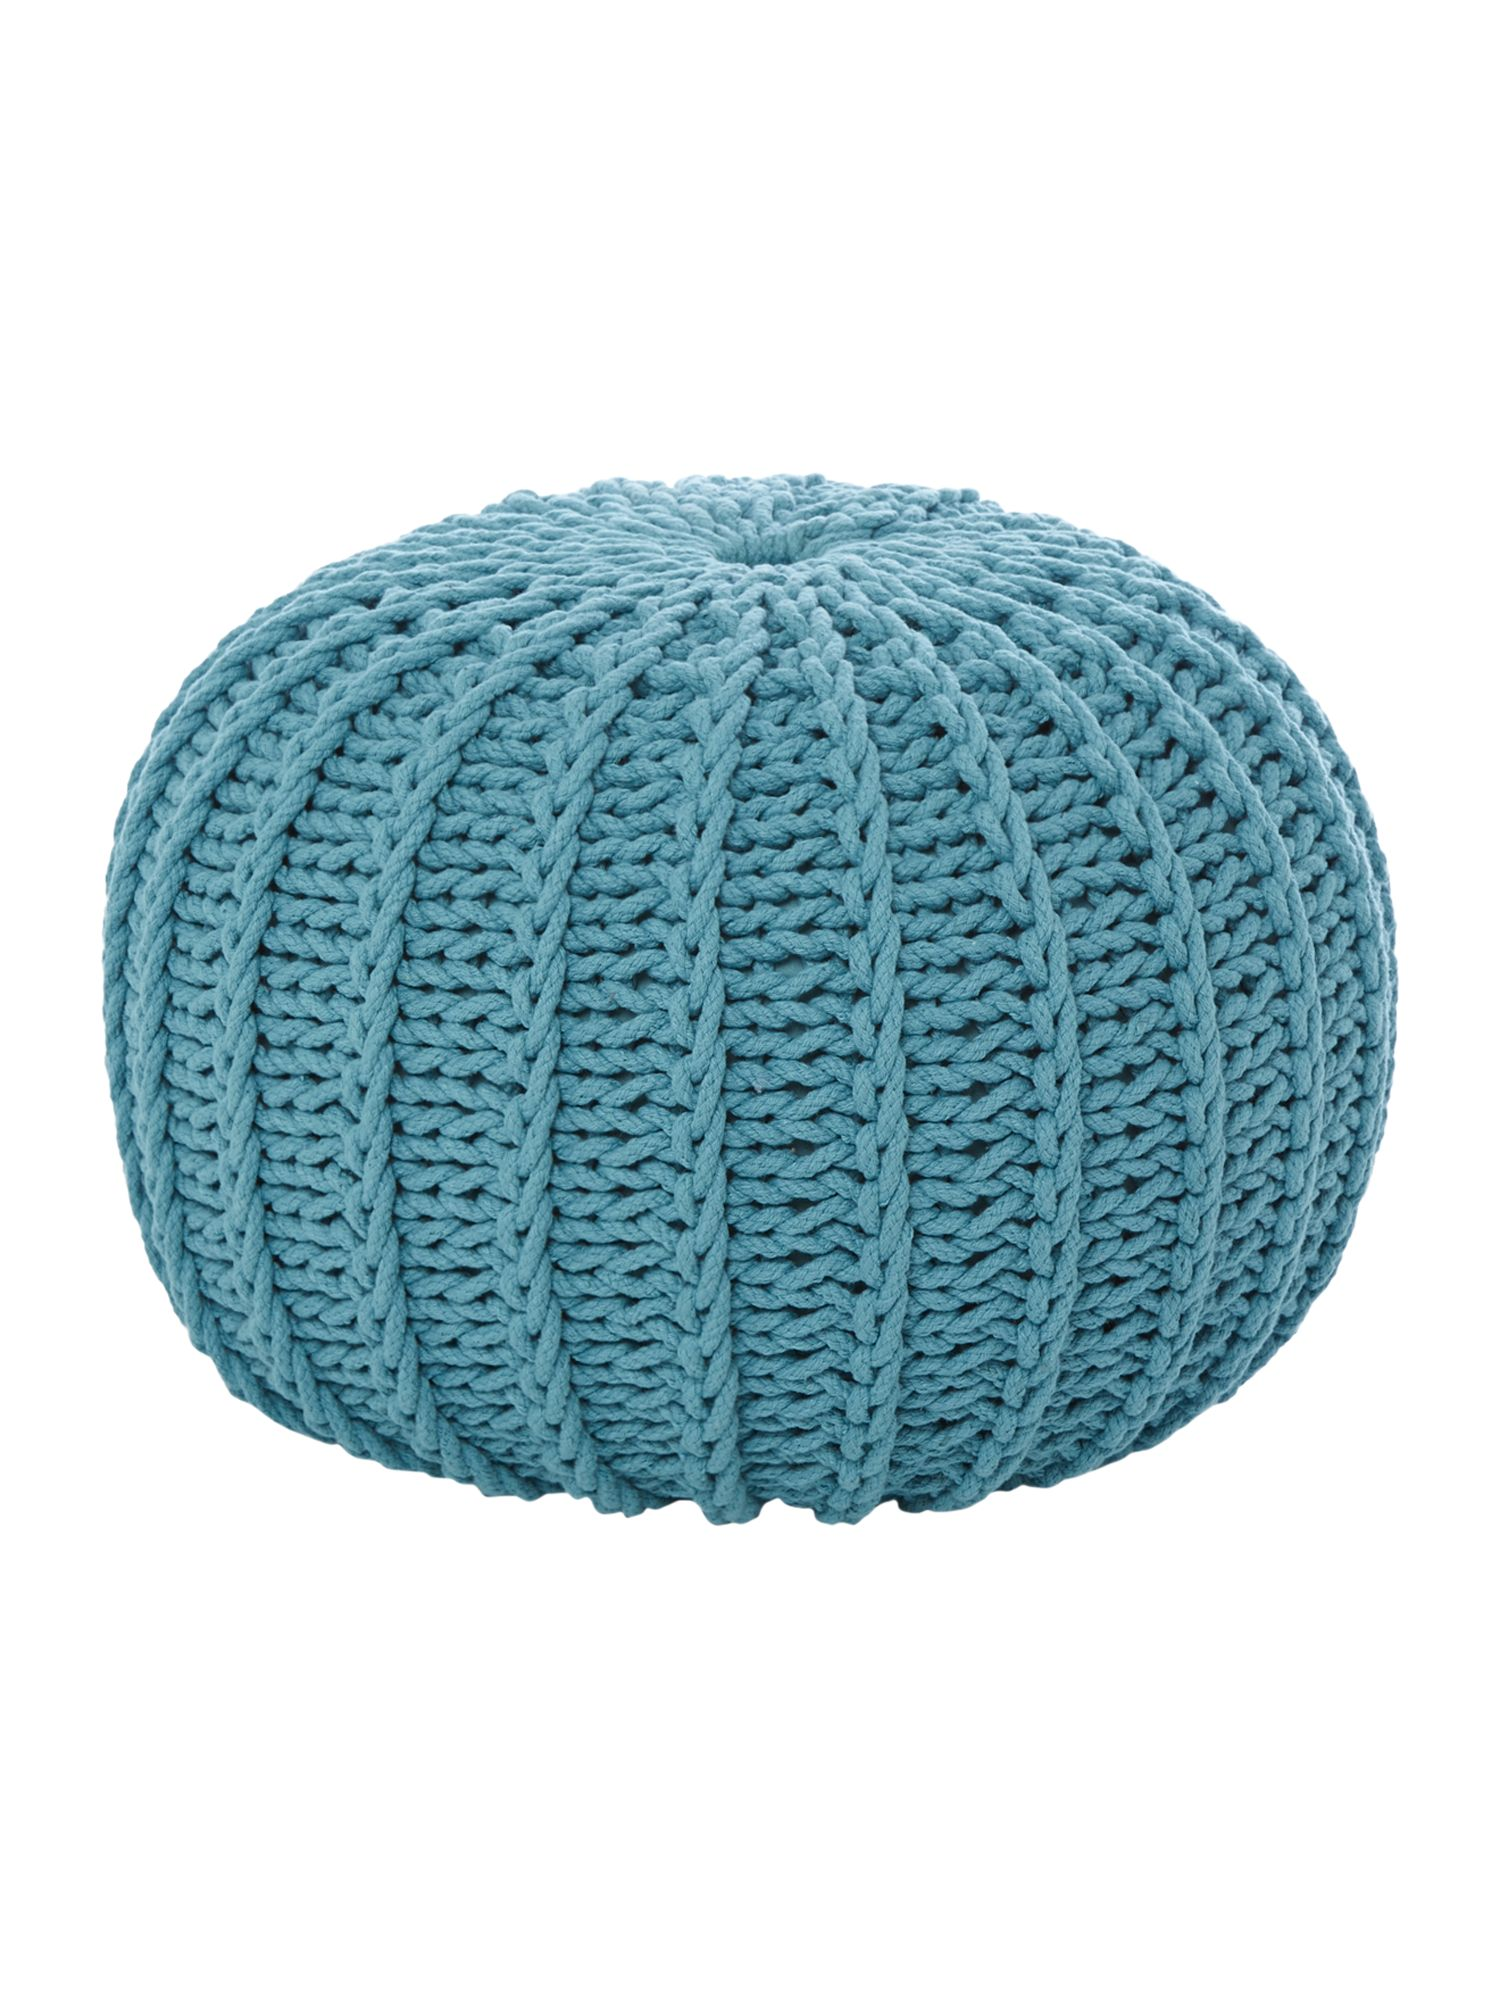 Pouf cotton/poly dusty turquoise 50x35cm